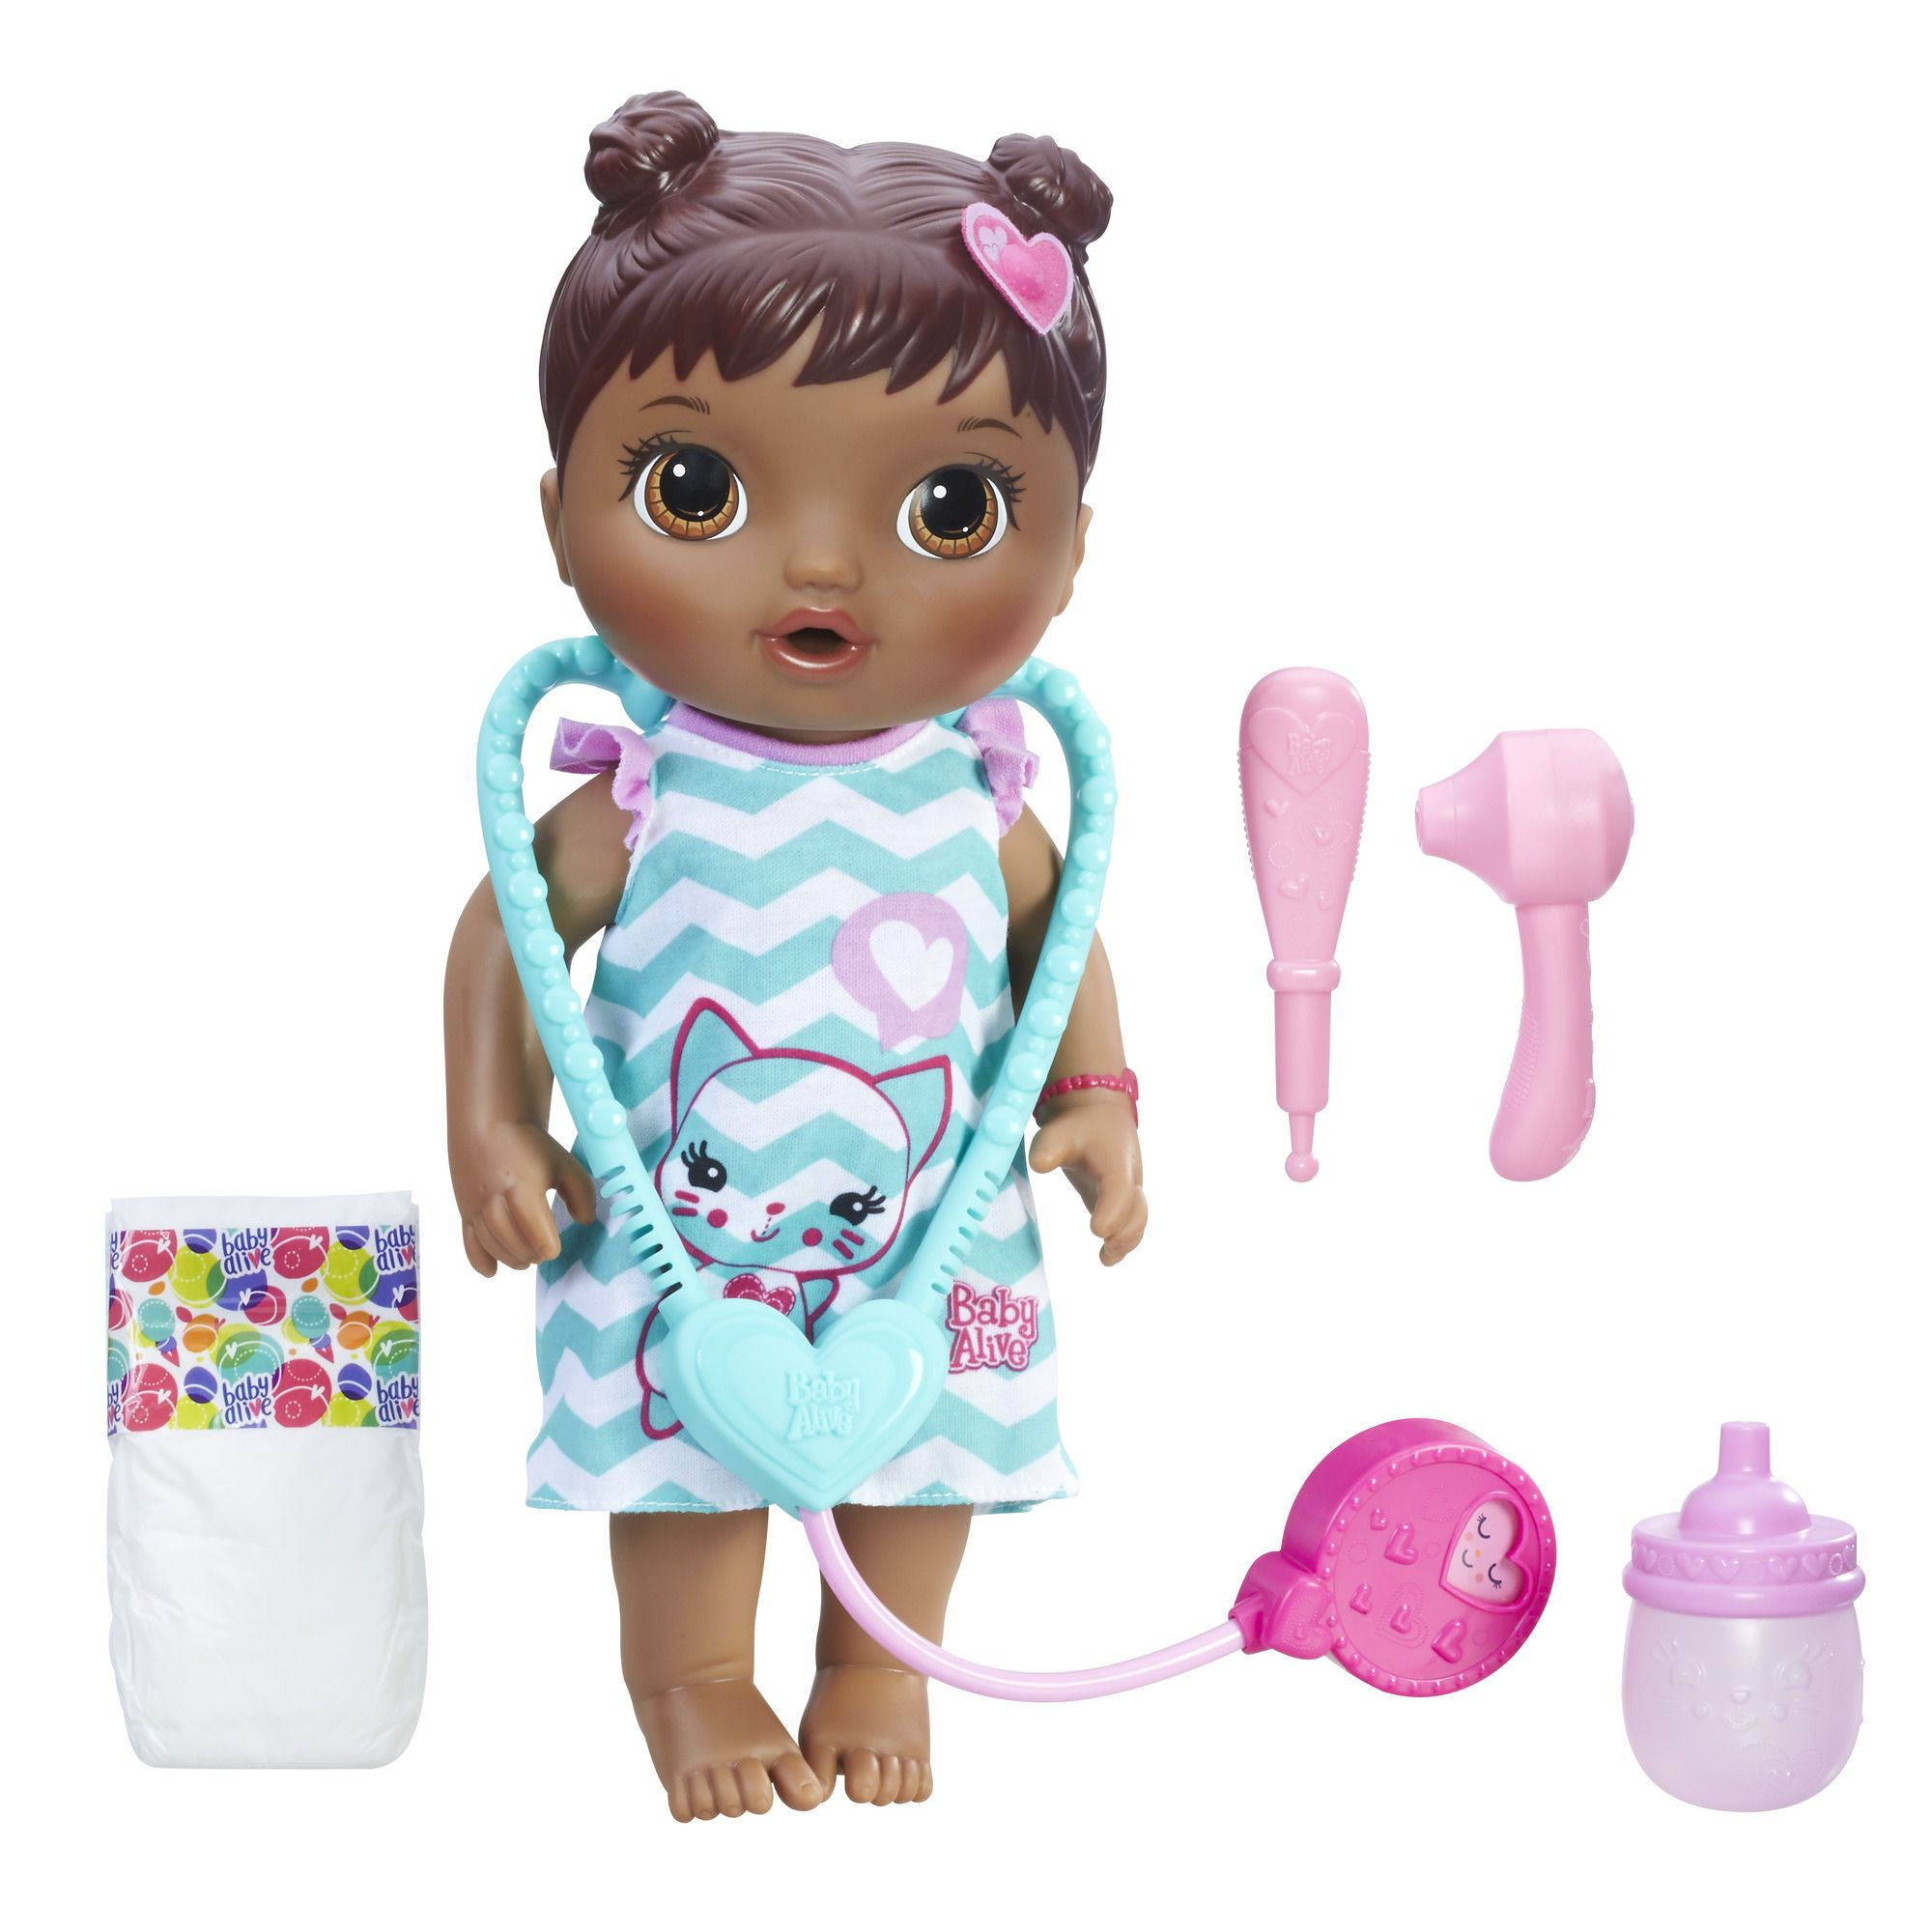 Baby Alive Better Now Bailey African American Multi Color Baby Alive Baby Alive Dolls Baby Alive Magical Scoops